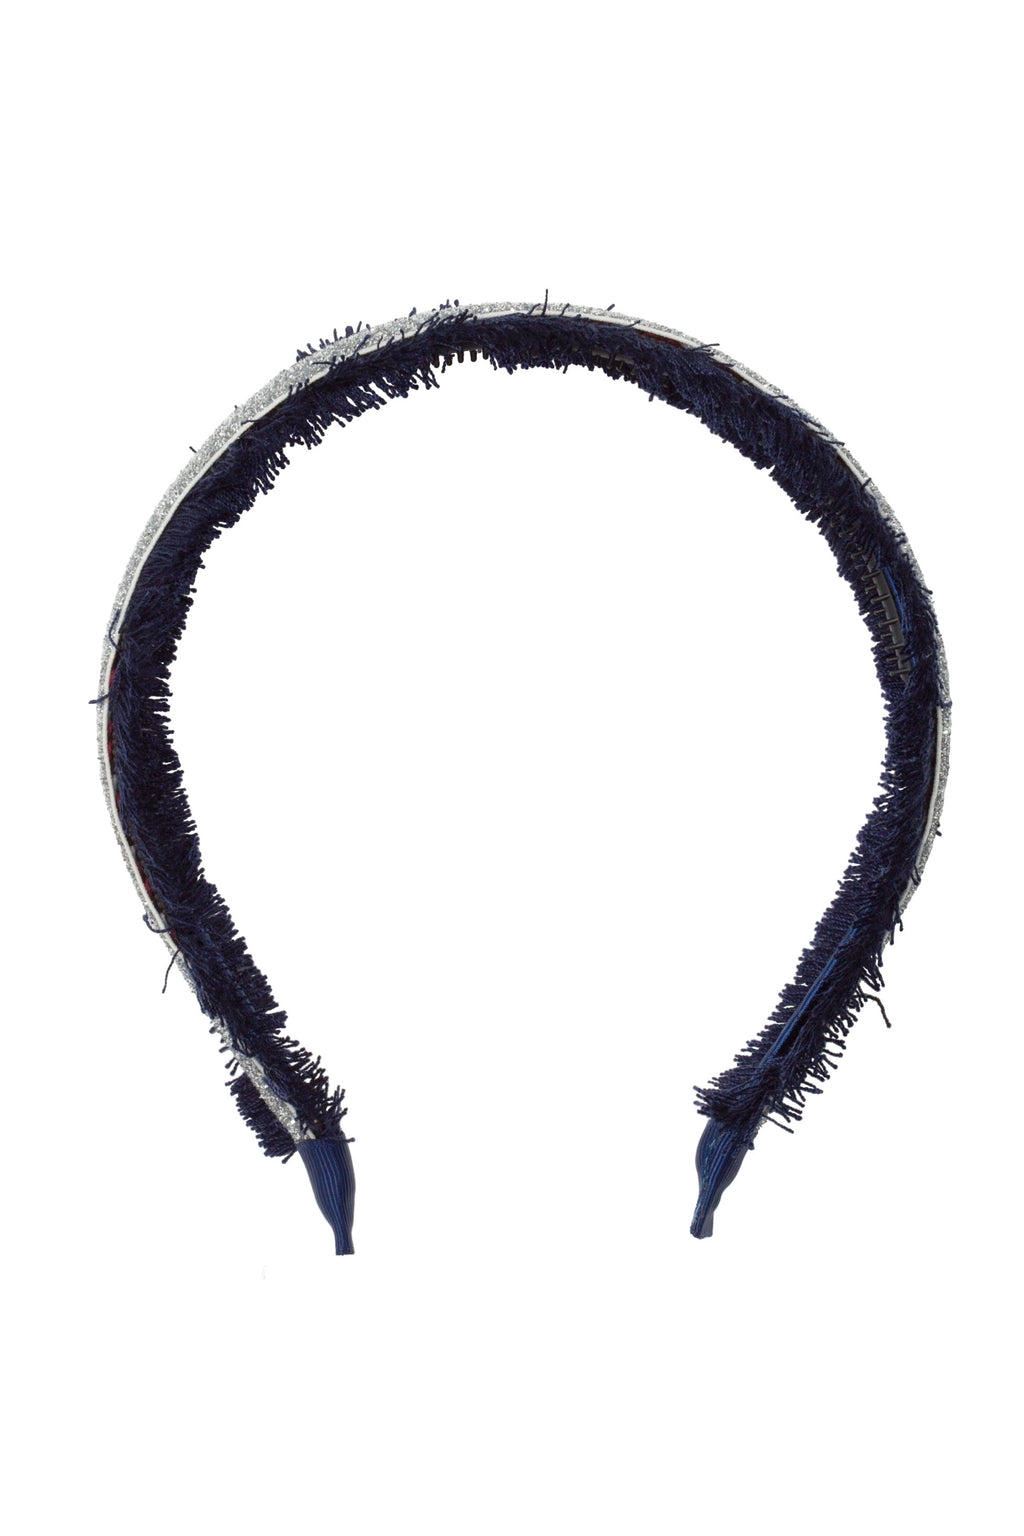 Flat Fringe Headband - Navy/Silver - PROJECT 6, modest fashion